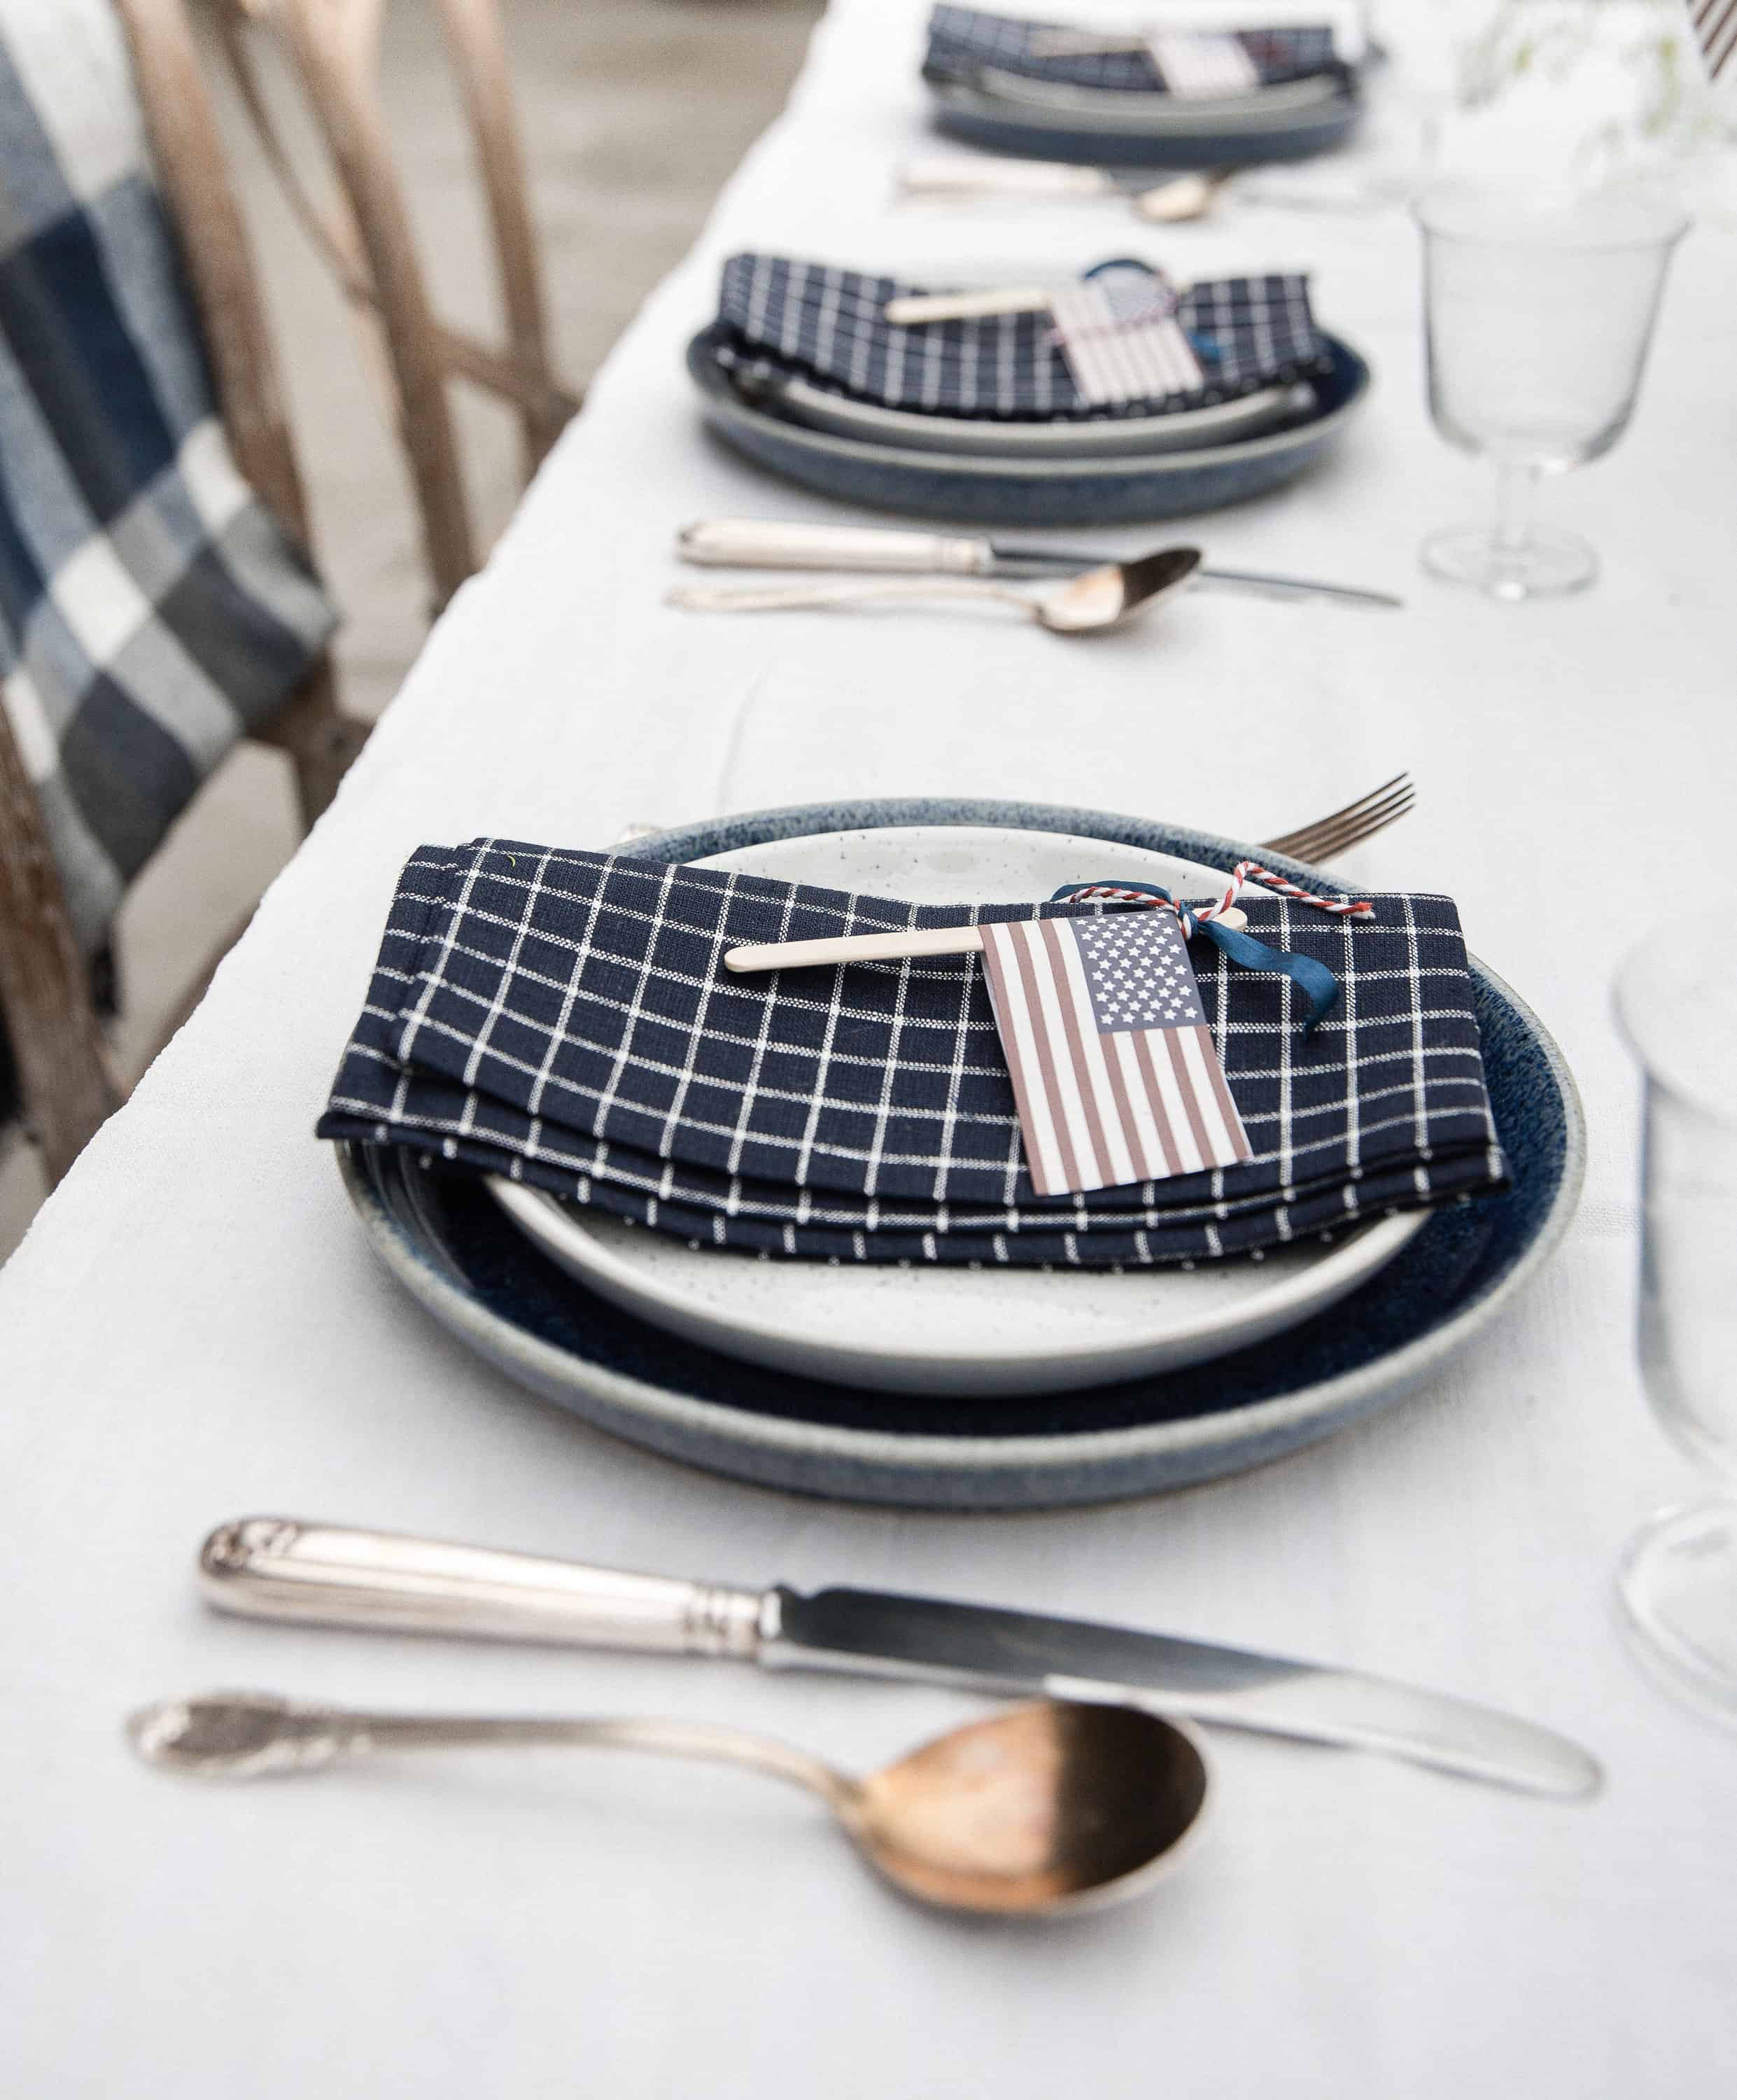 Get inspired for Fourth of July with this easy table decor and centerpiece idea!